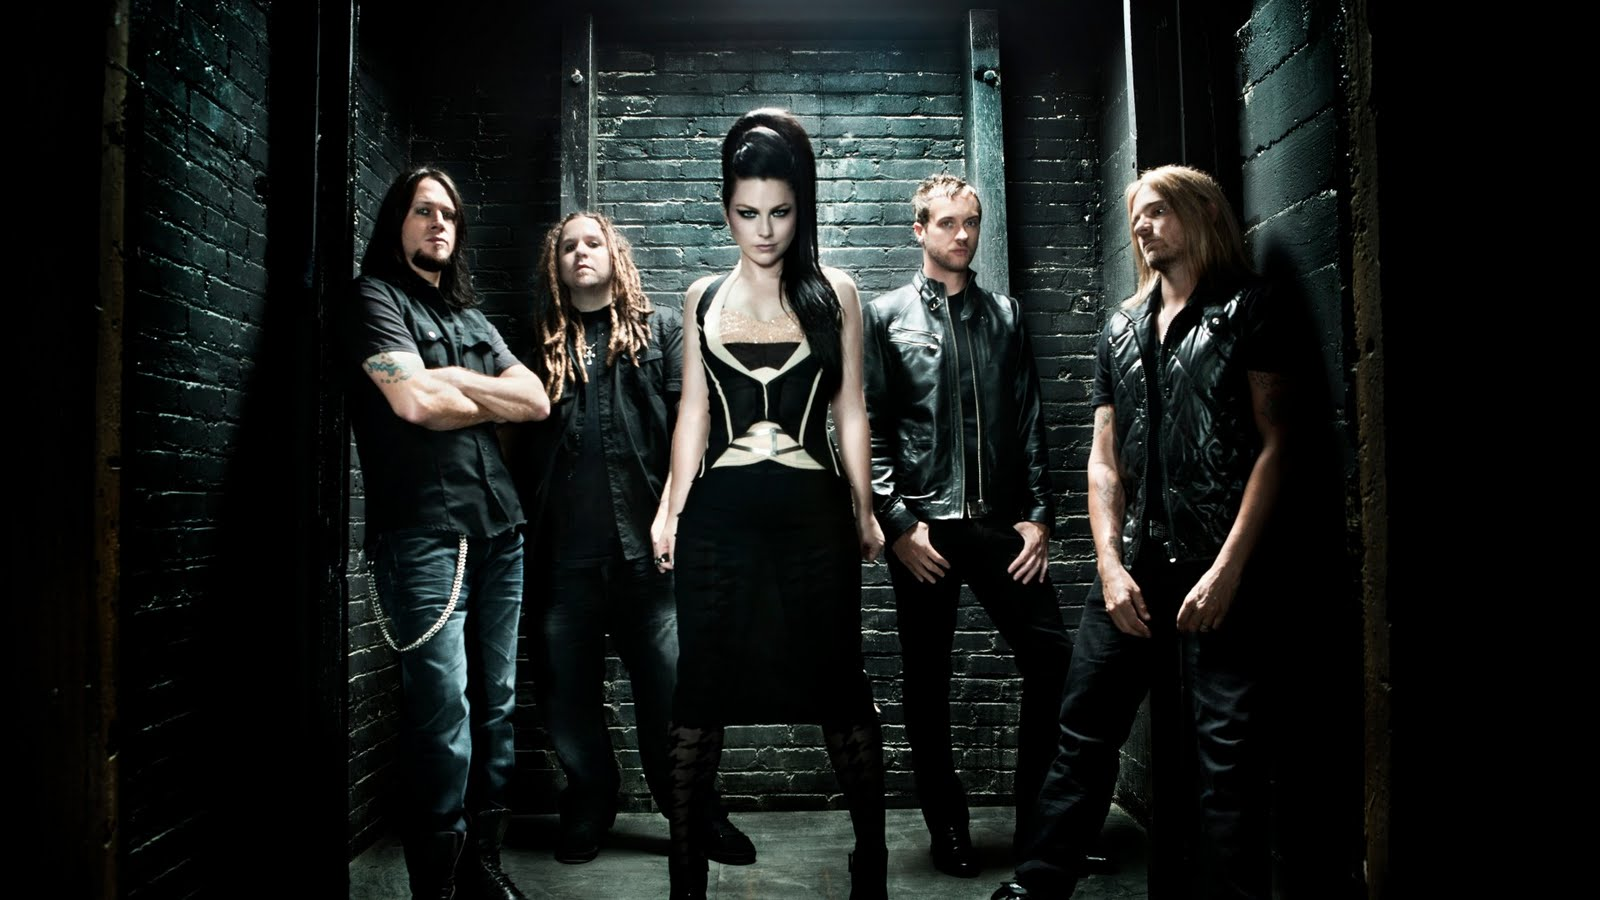 evanescence wallpaper hd 1600x900